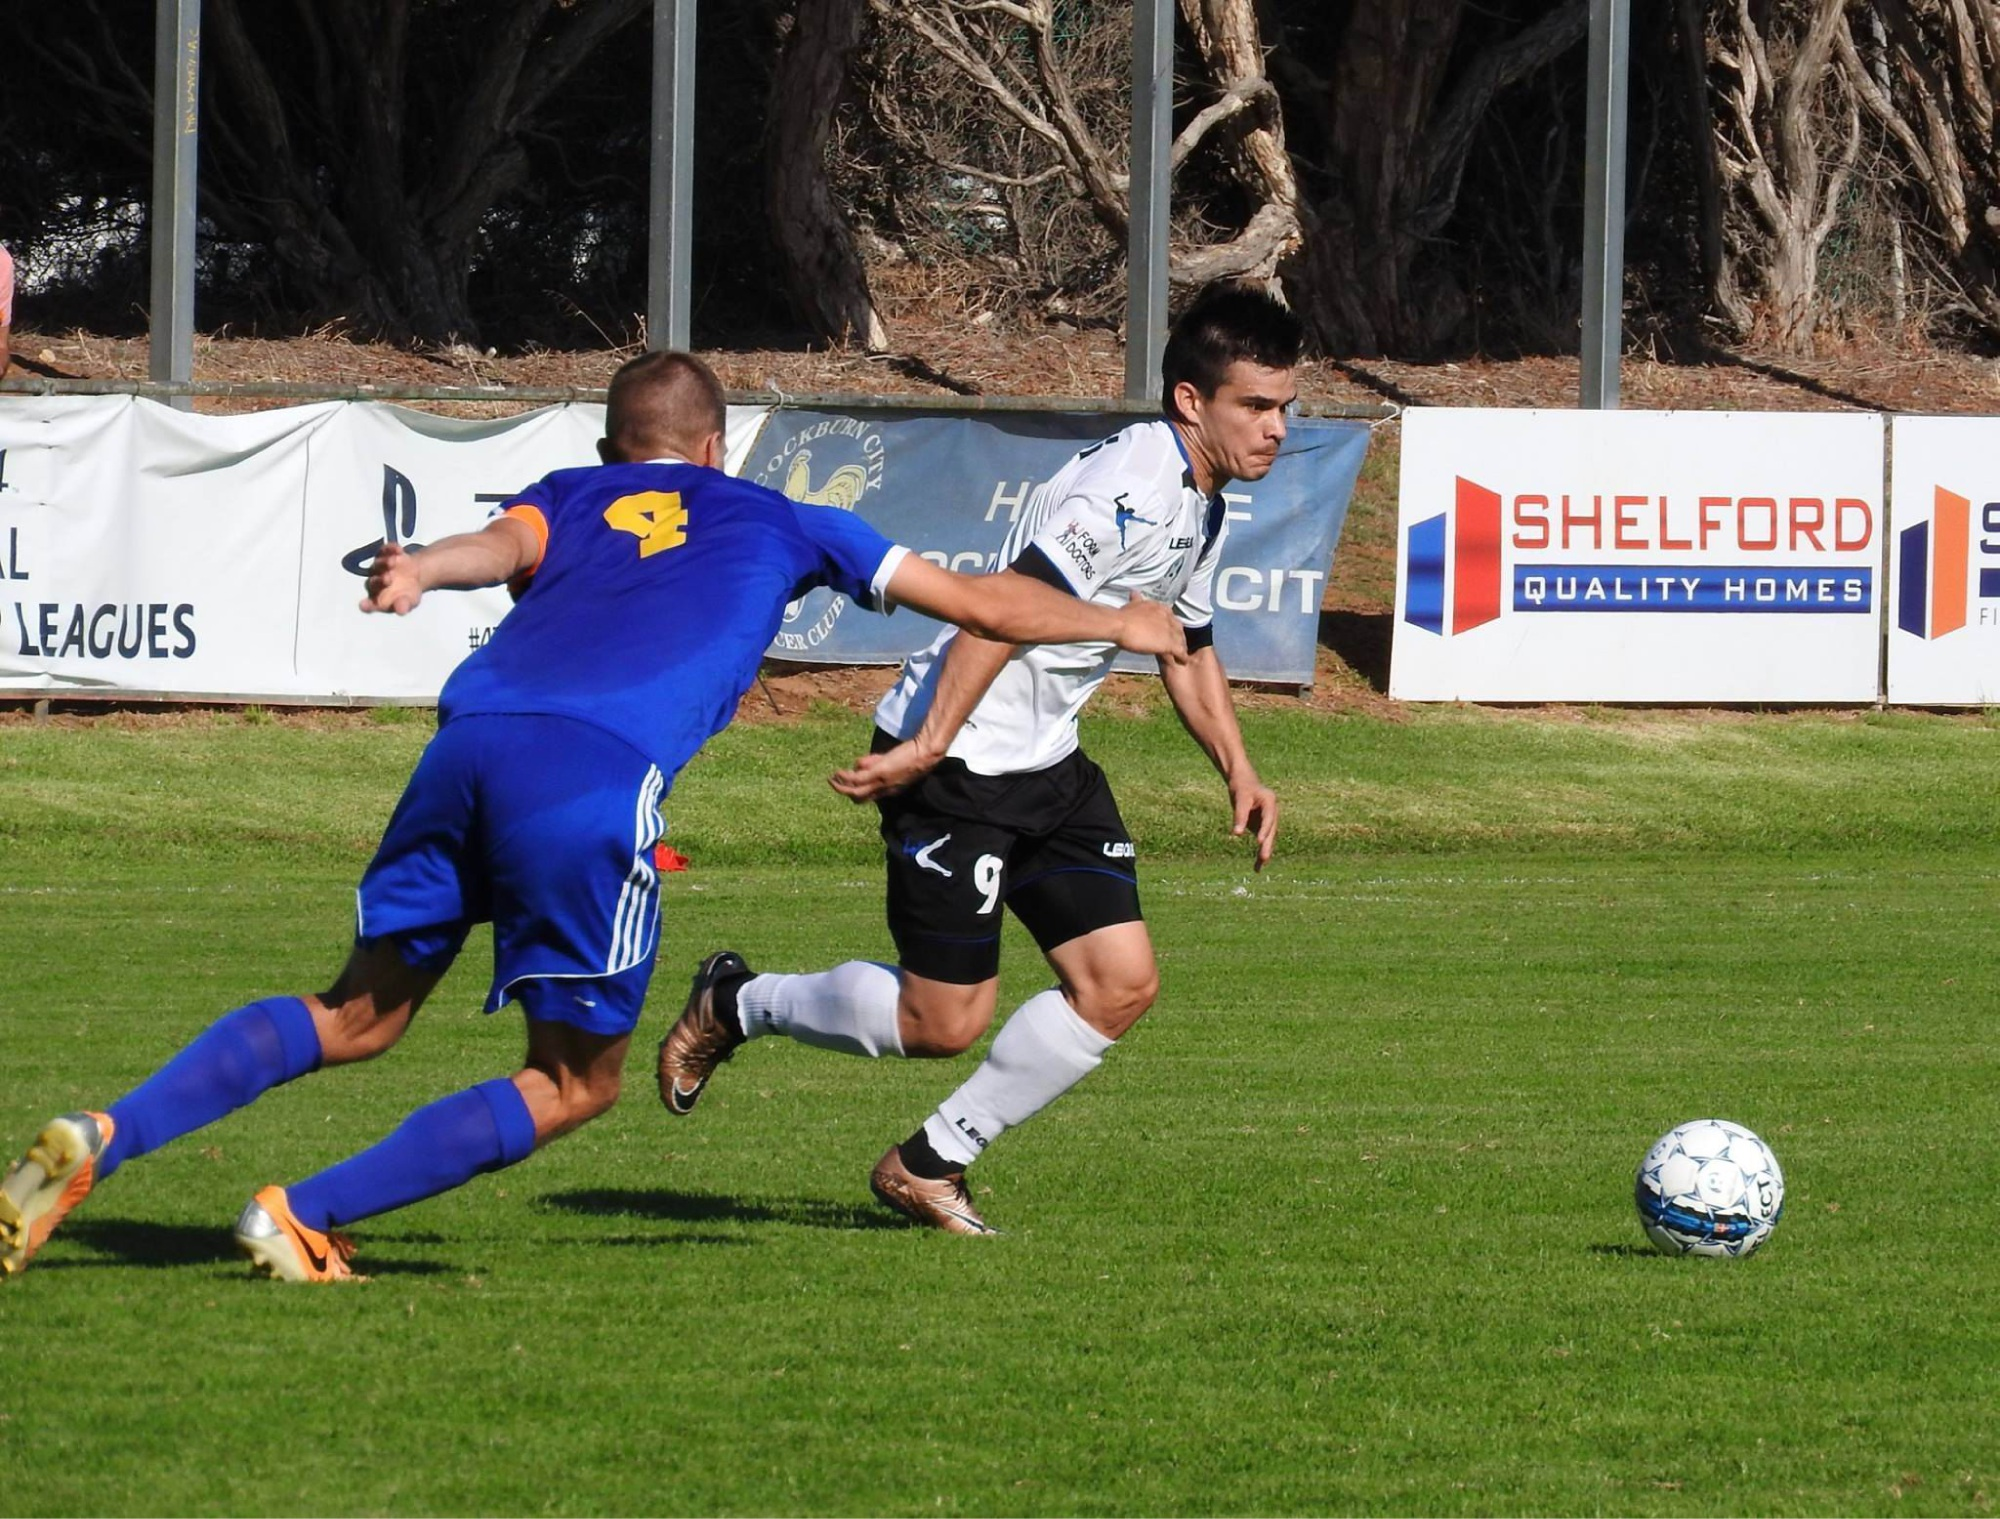 Lewis McMahon scored a hat-trick for Floreat Athena to help it defeat Armadale. Picture: Football West